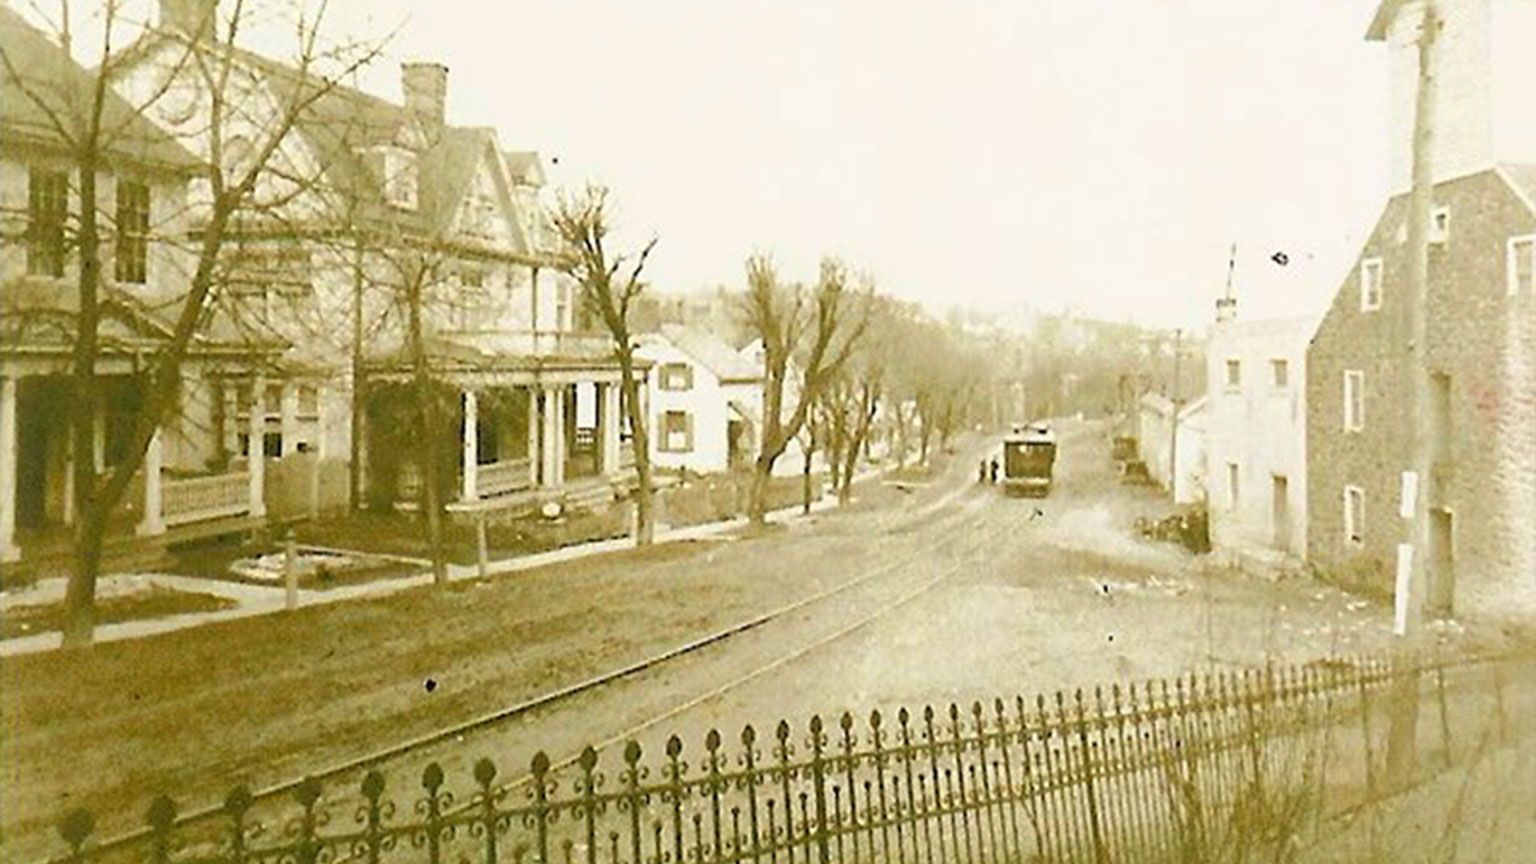 The main road was wide, but muddy. The road was lined with houses and had a trolley that ran down the middle.